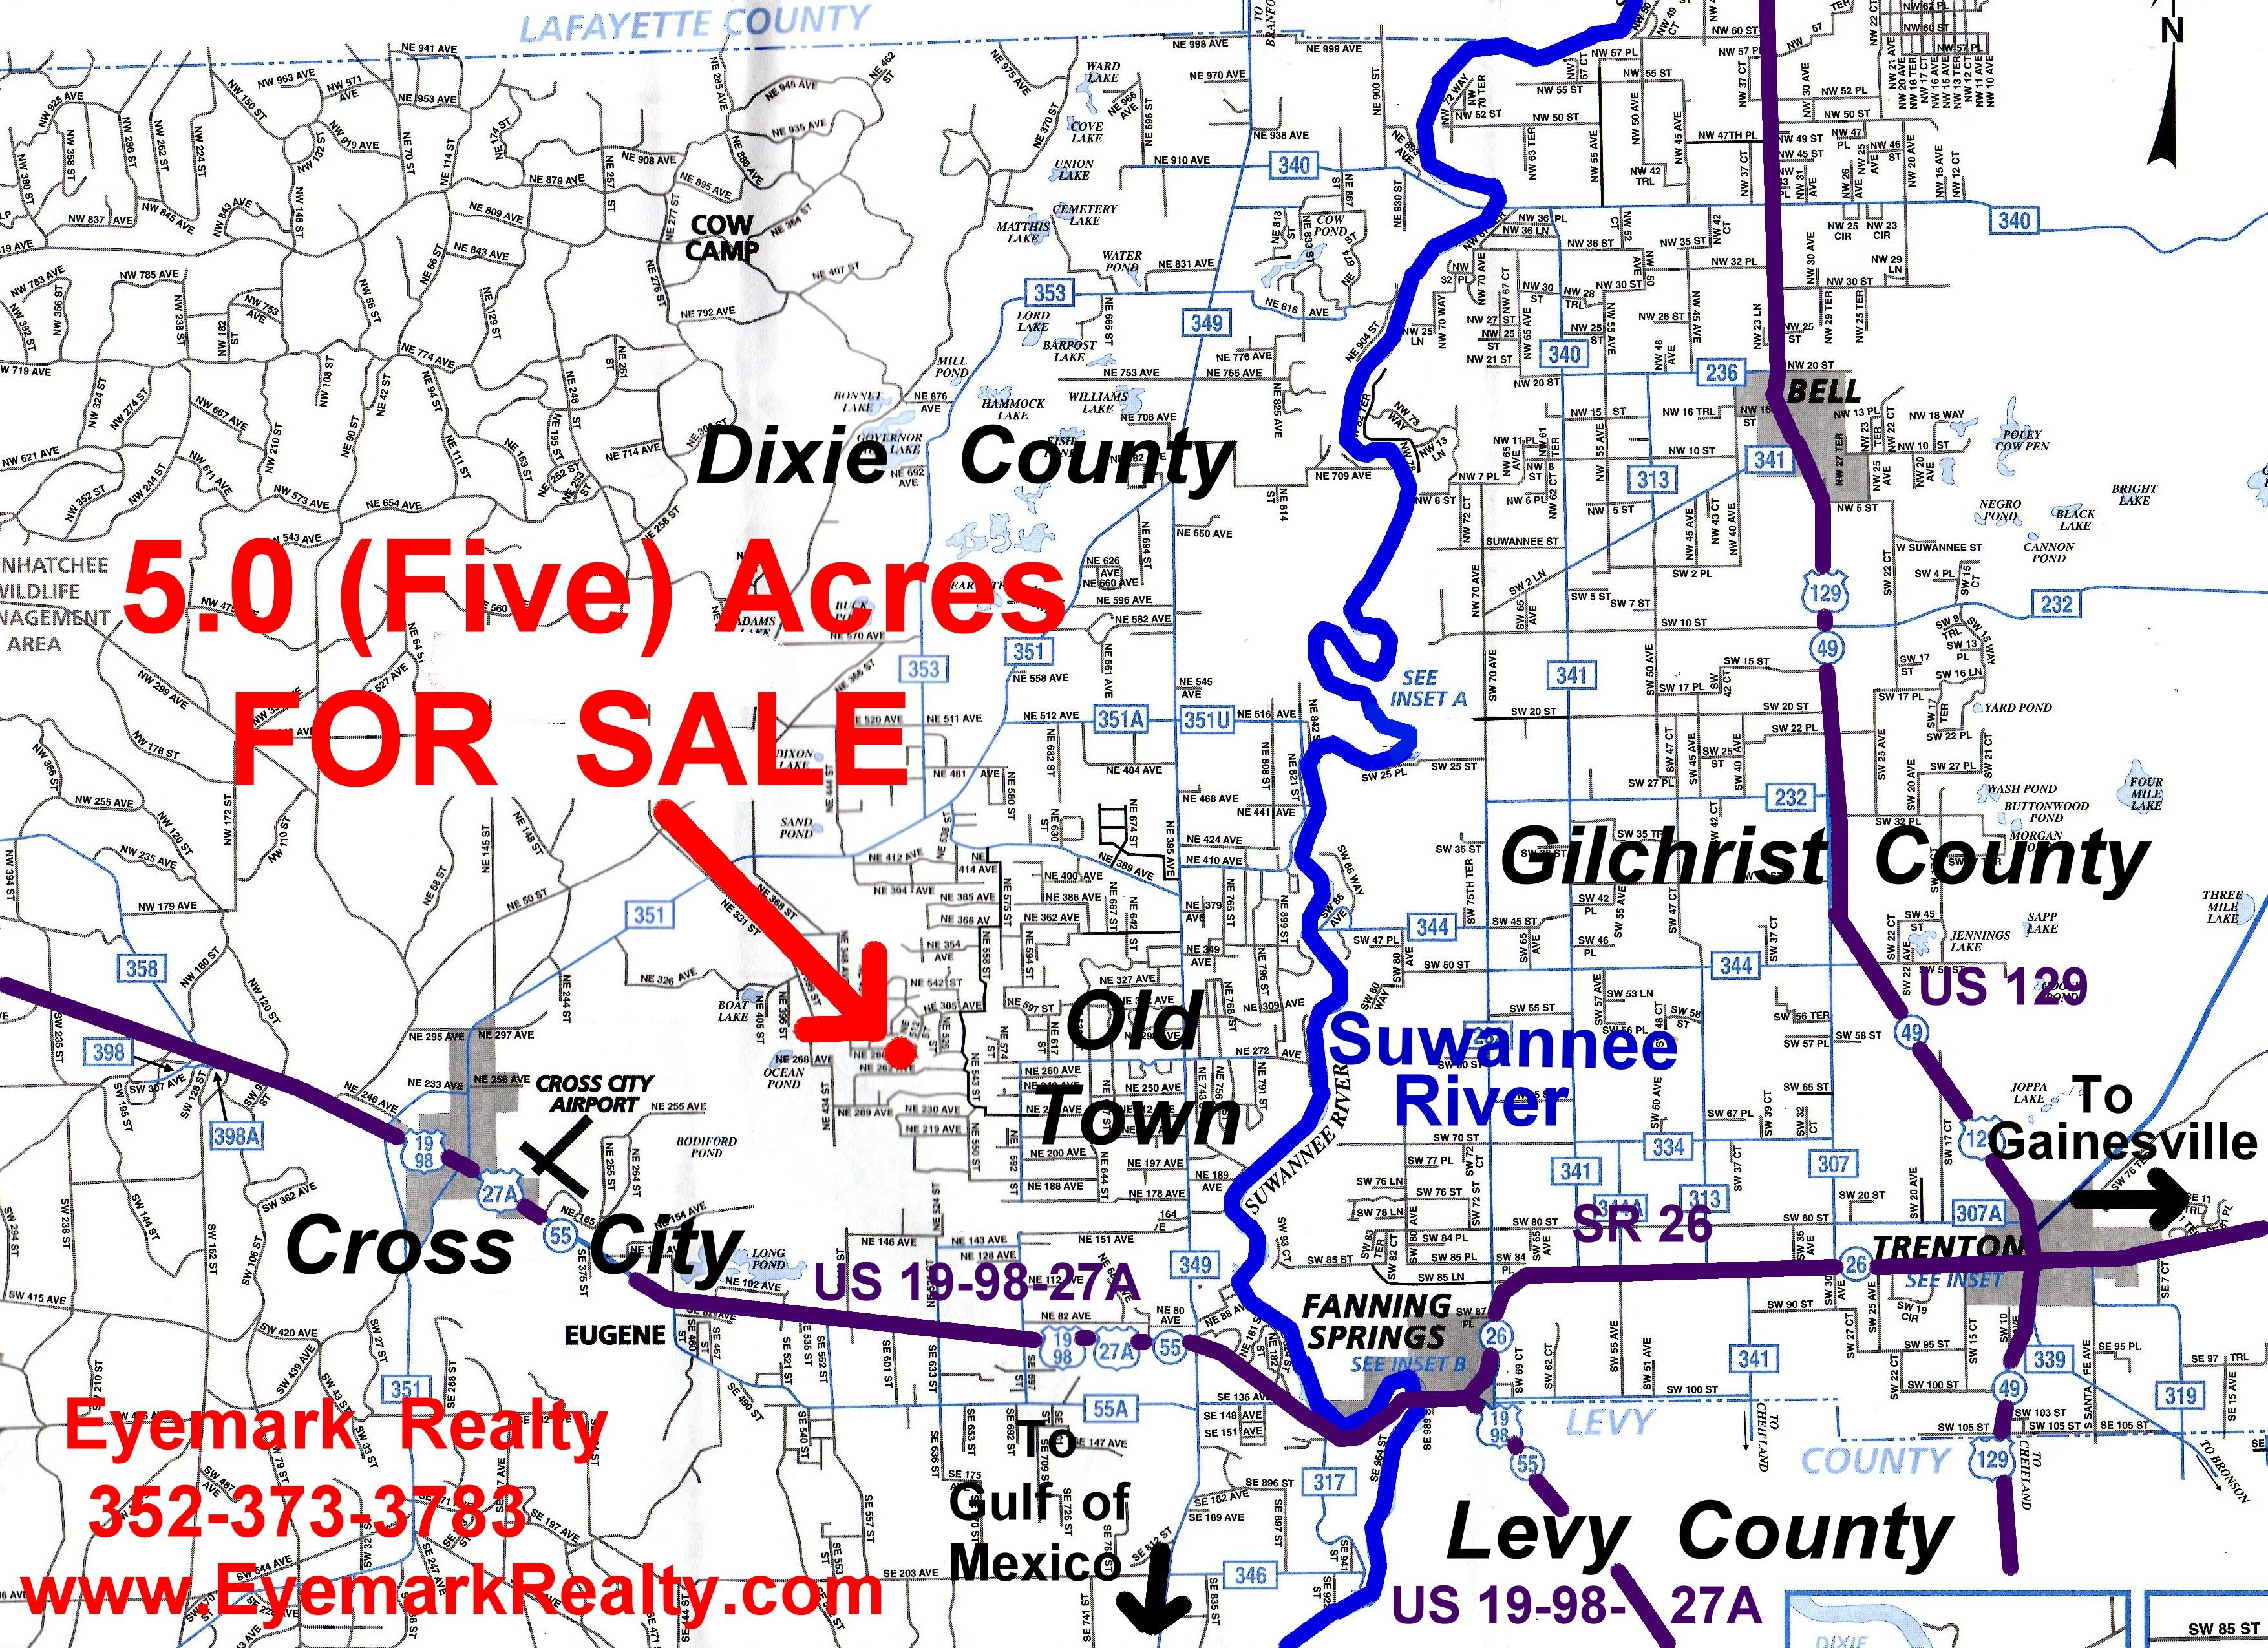 Old Town Florida Map.5 Five Acres For Sale Old Town Fl 32680 Dixie County Florida